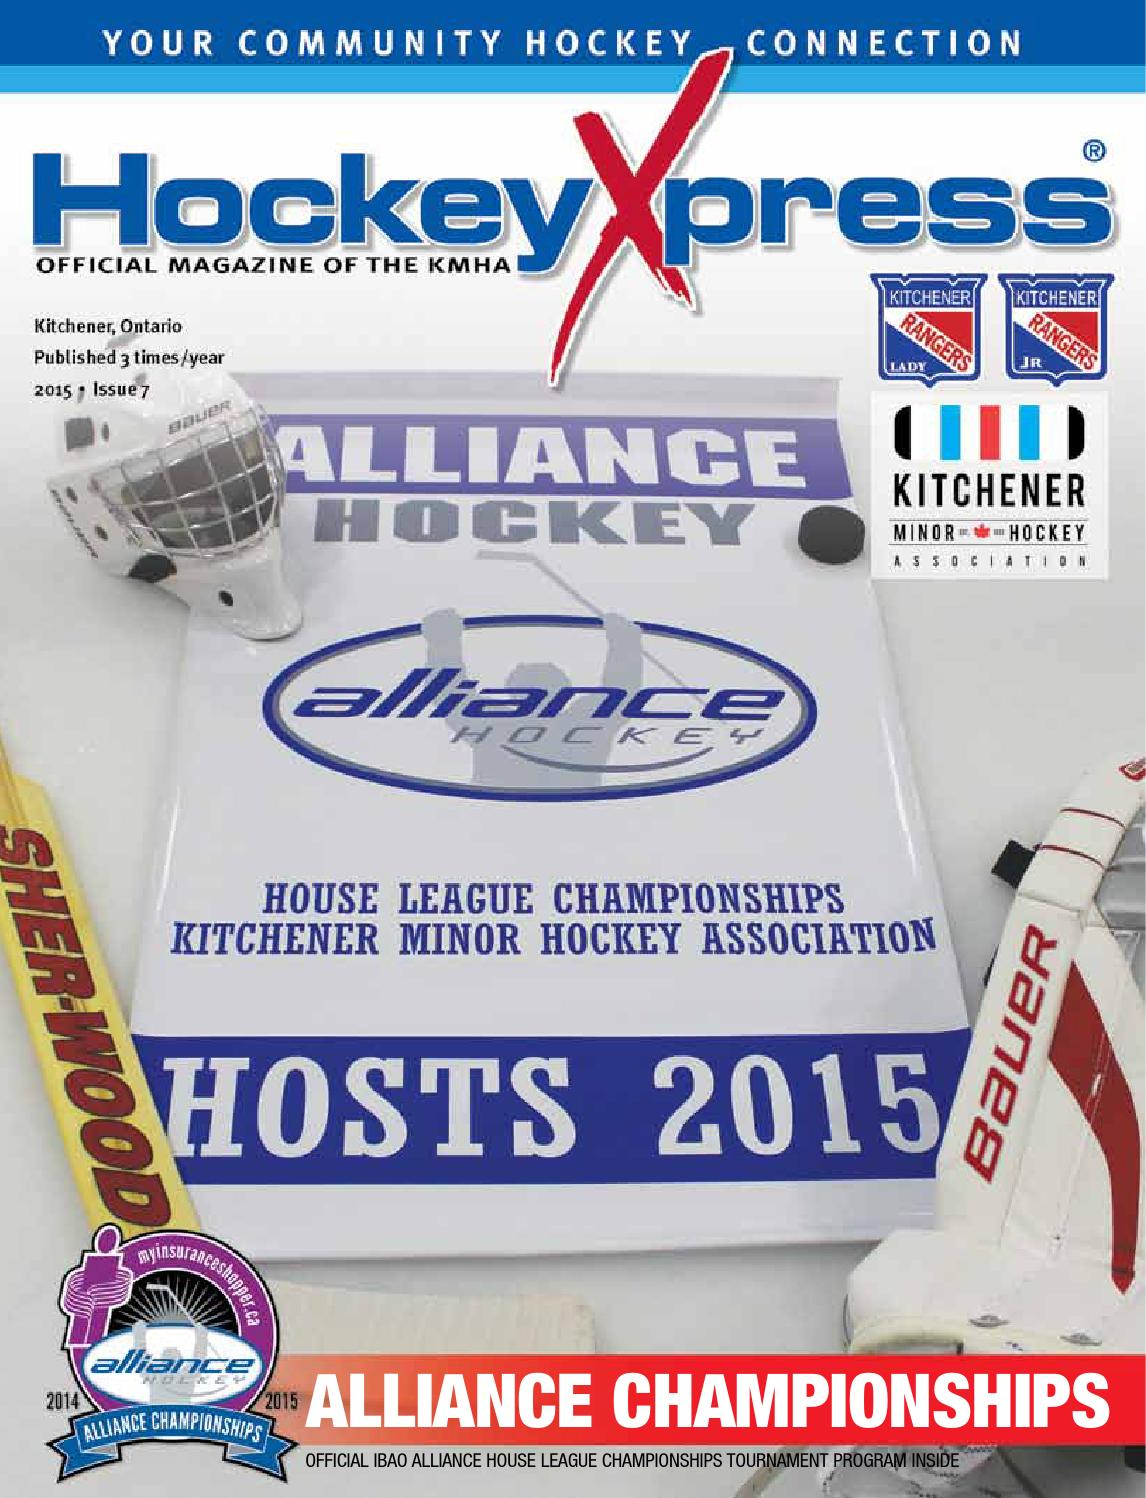 KW HockeyXpress Issue 7 by SportsXpress - issuu